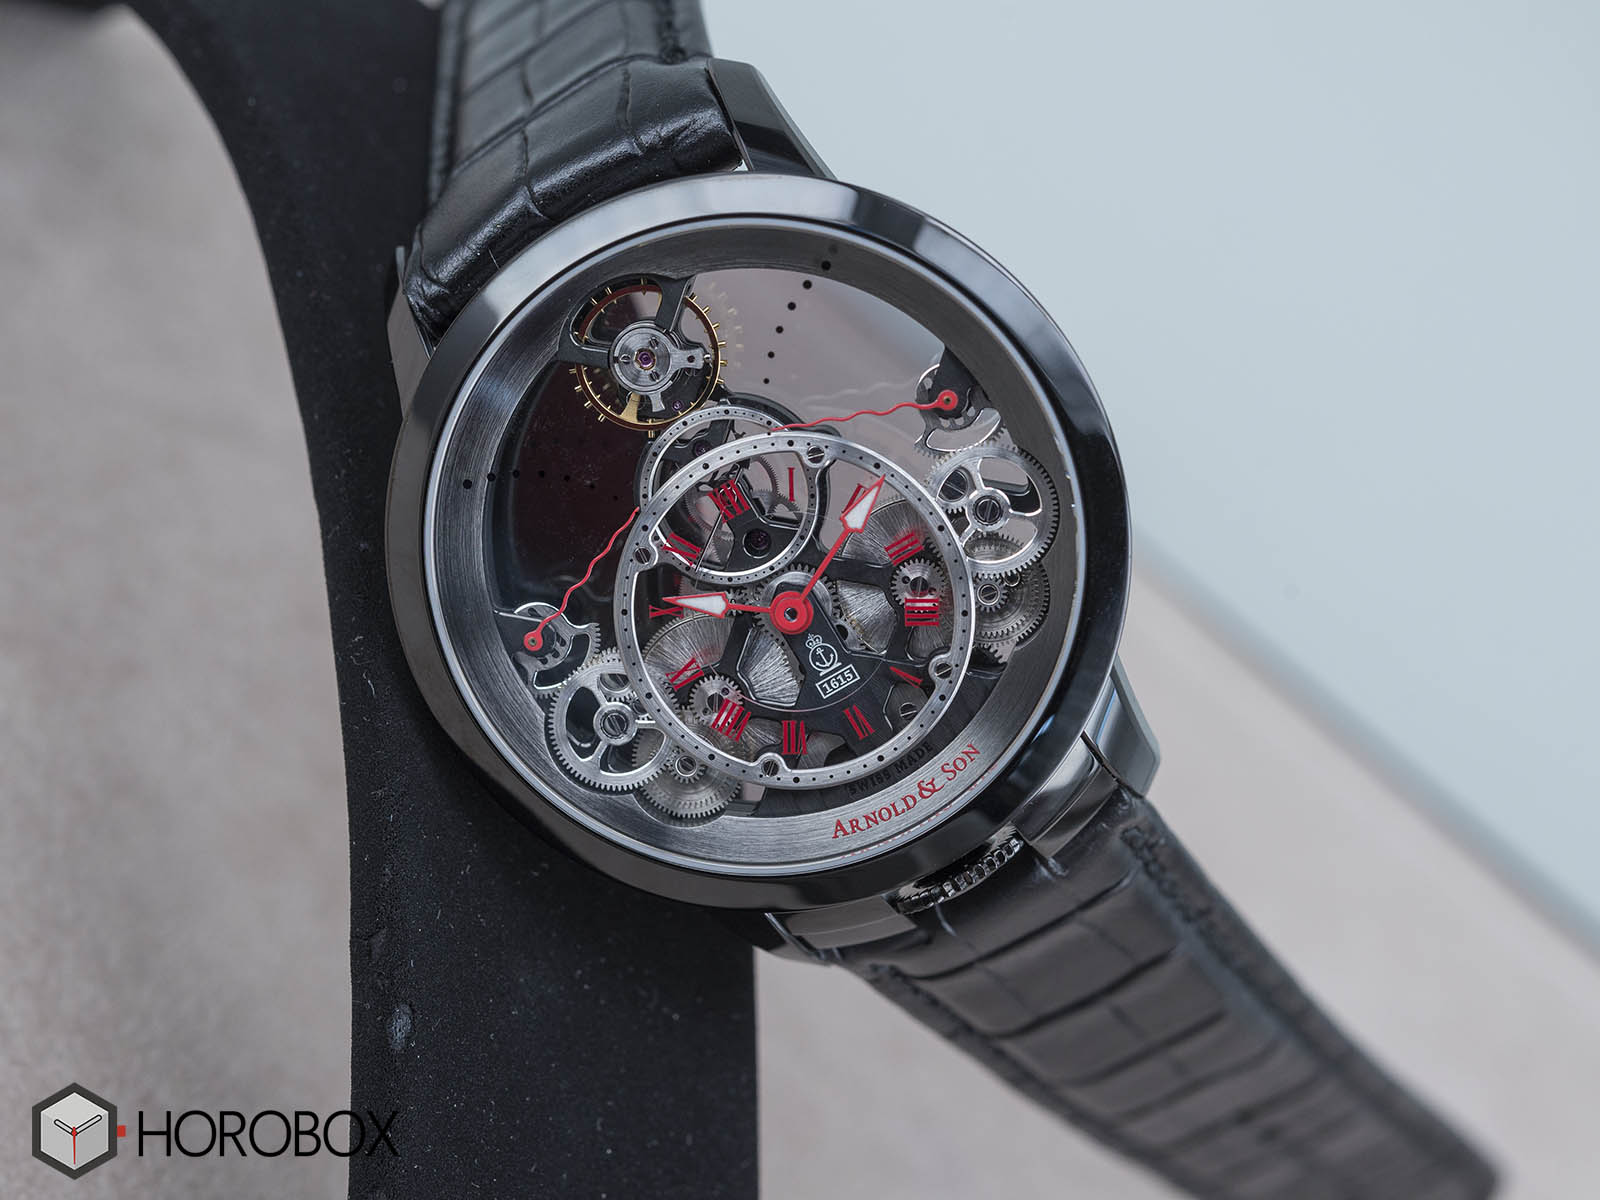 arnold-son-time-pyramid-onlywatch.jpg